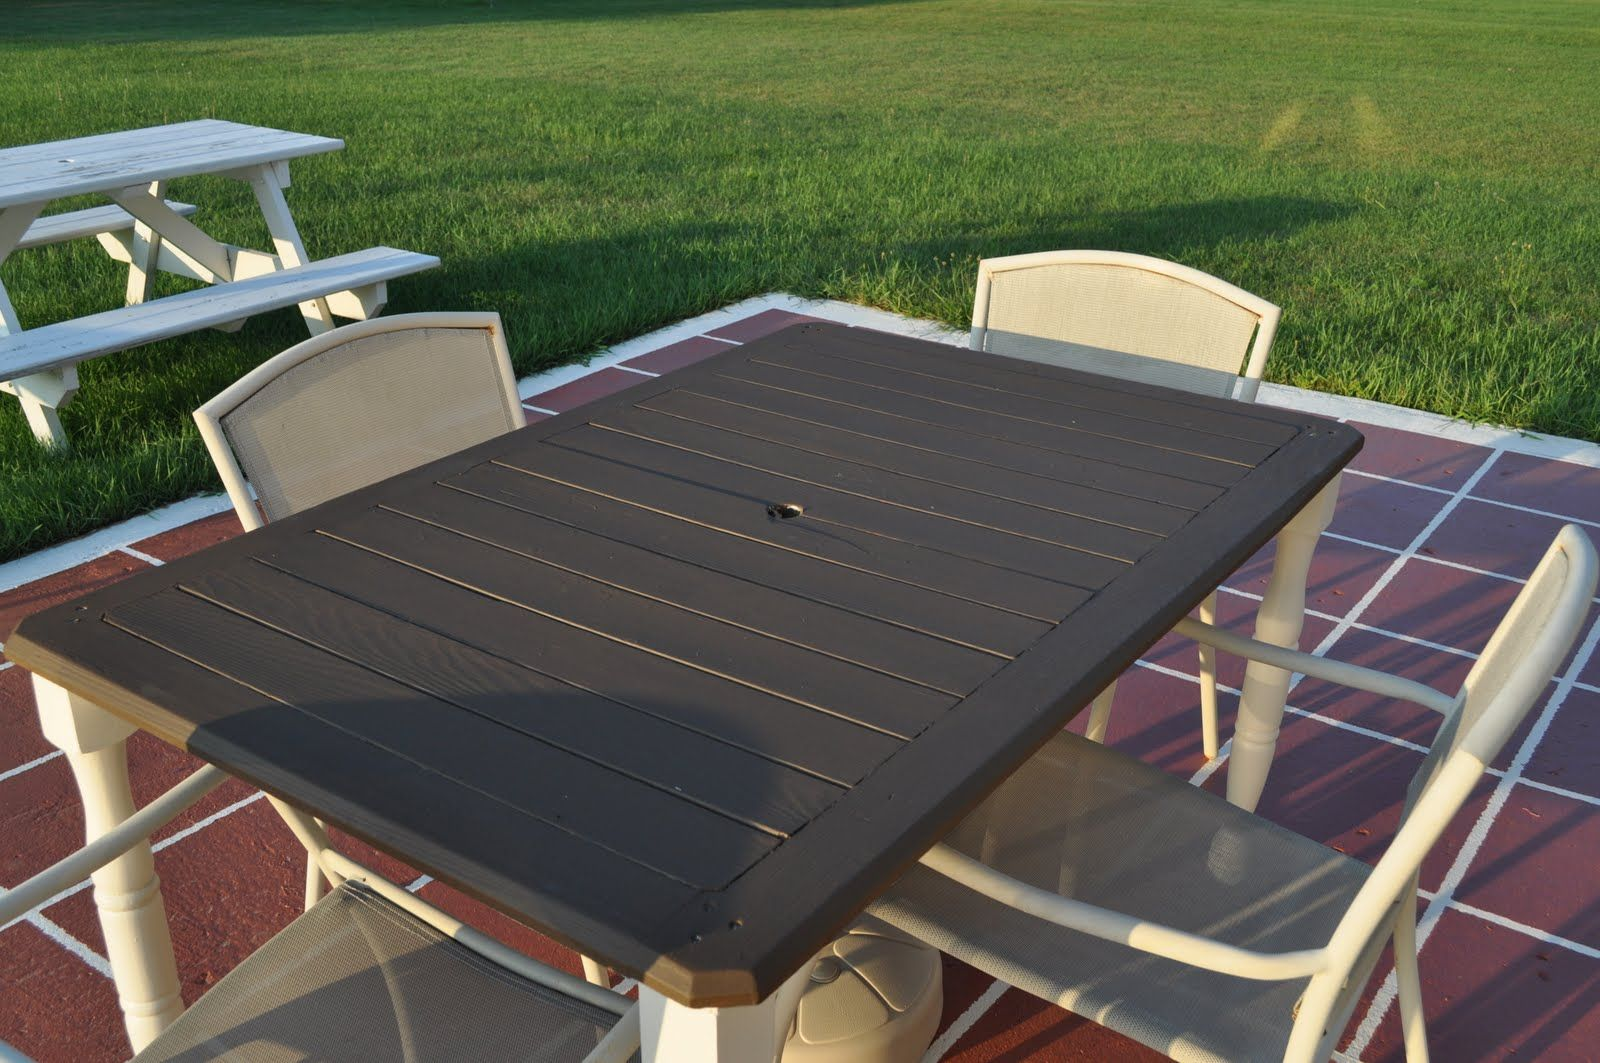 Replacing Broken Glass In Patio Table Here Is A Picture